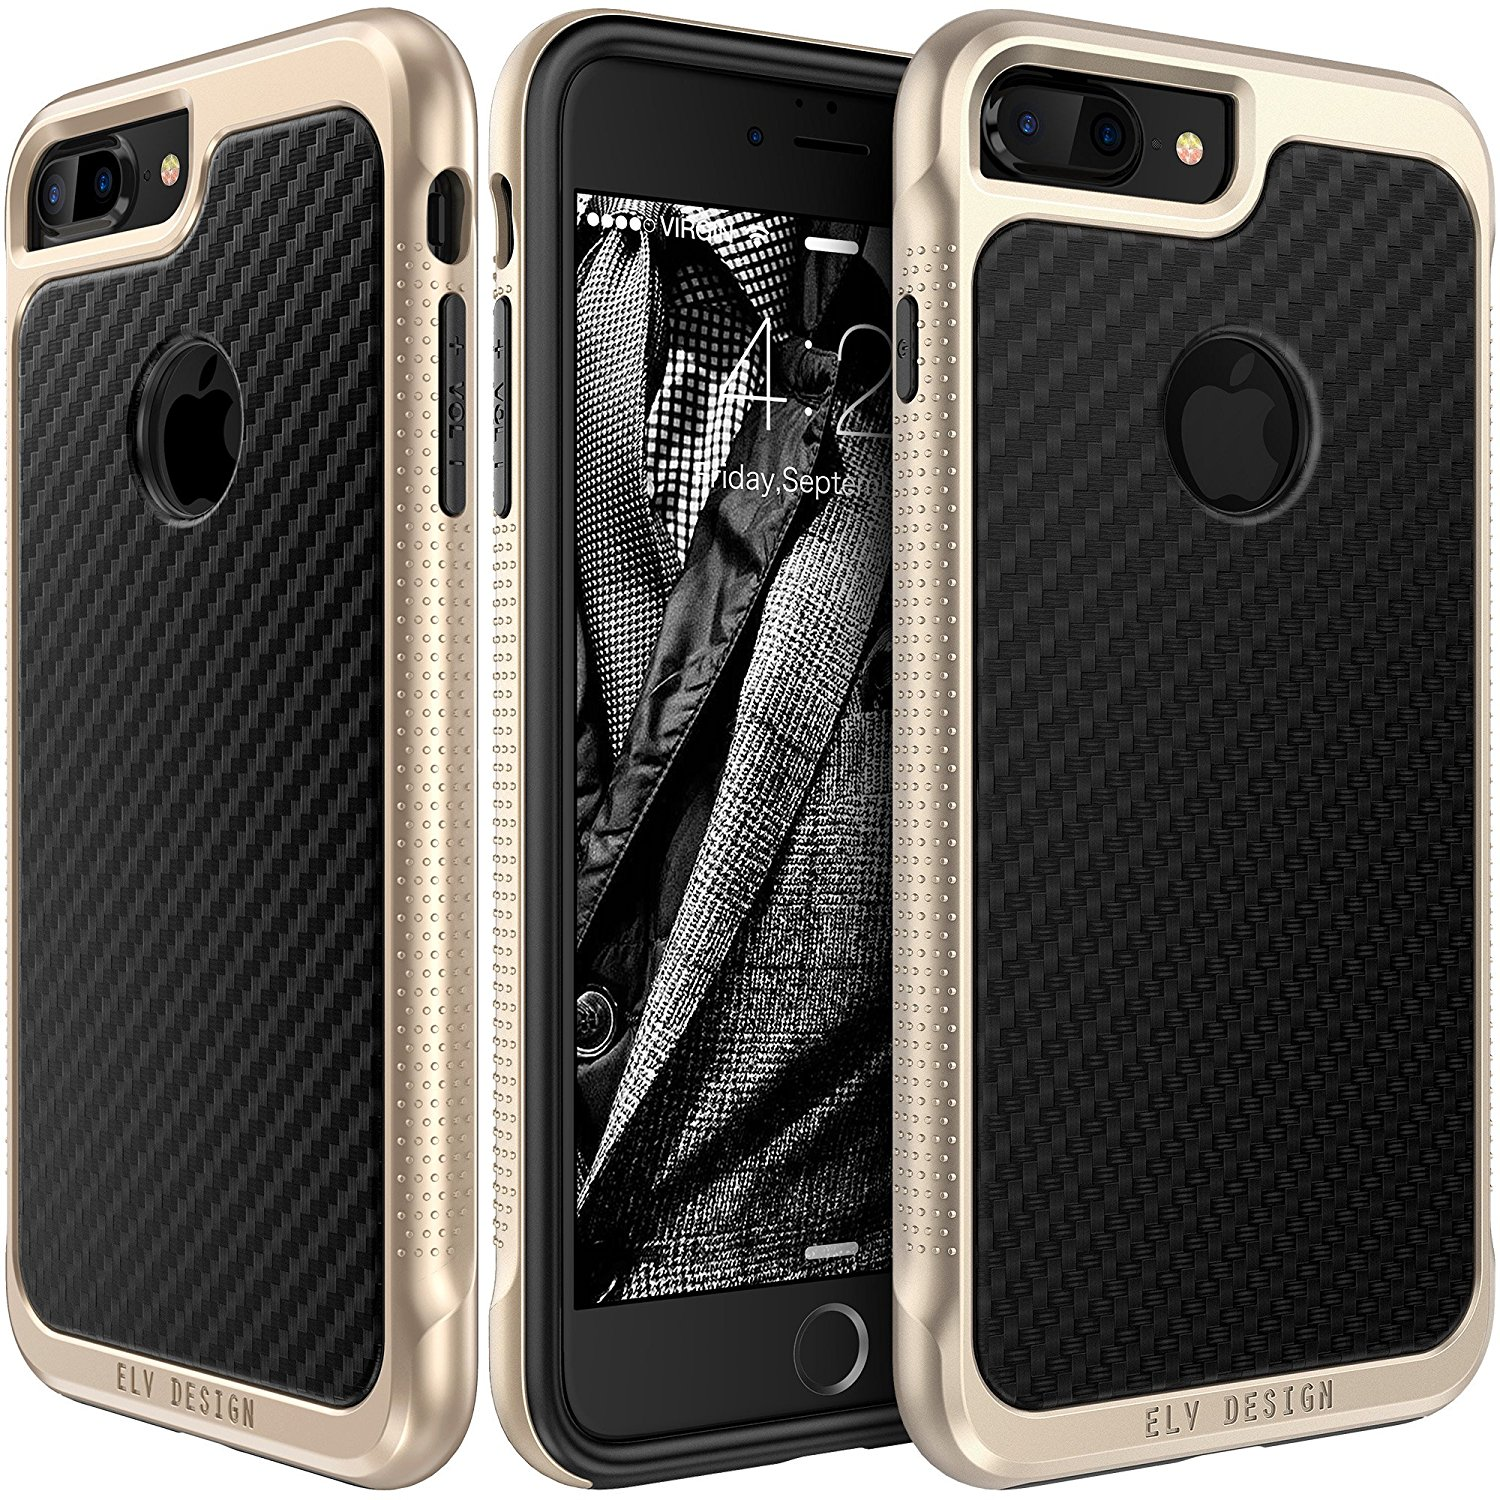 iPhone 7 Plus Case, E LV iPhone 7 Plus Case Cover - PU Leather Slim Protective Case Cover for Apple iPhone 7 Plus - [CARBON BLACK]